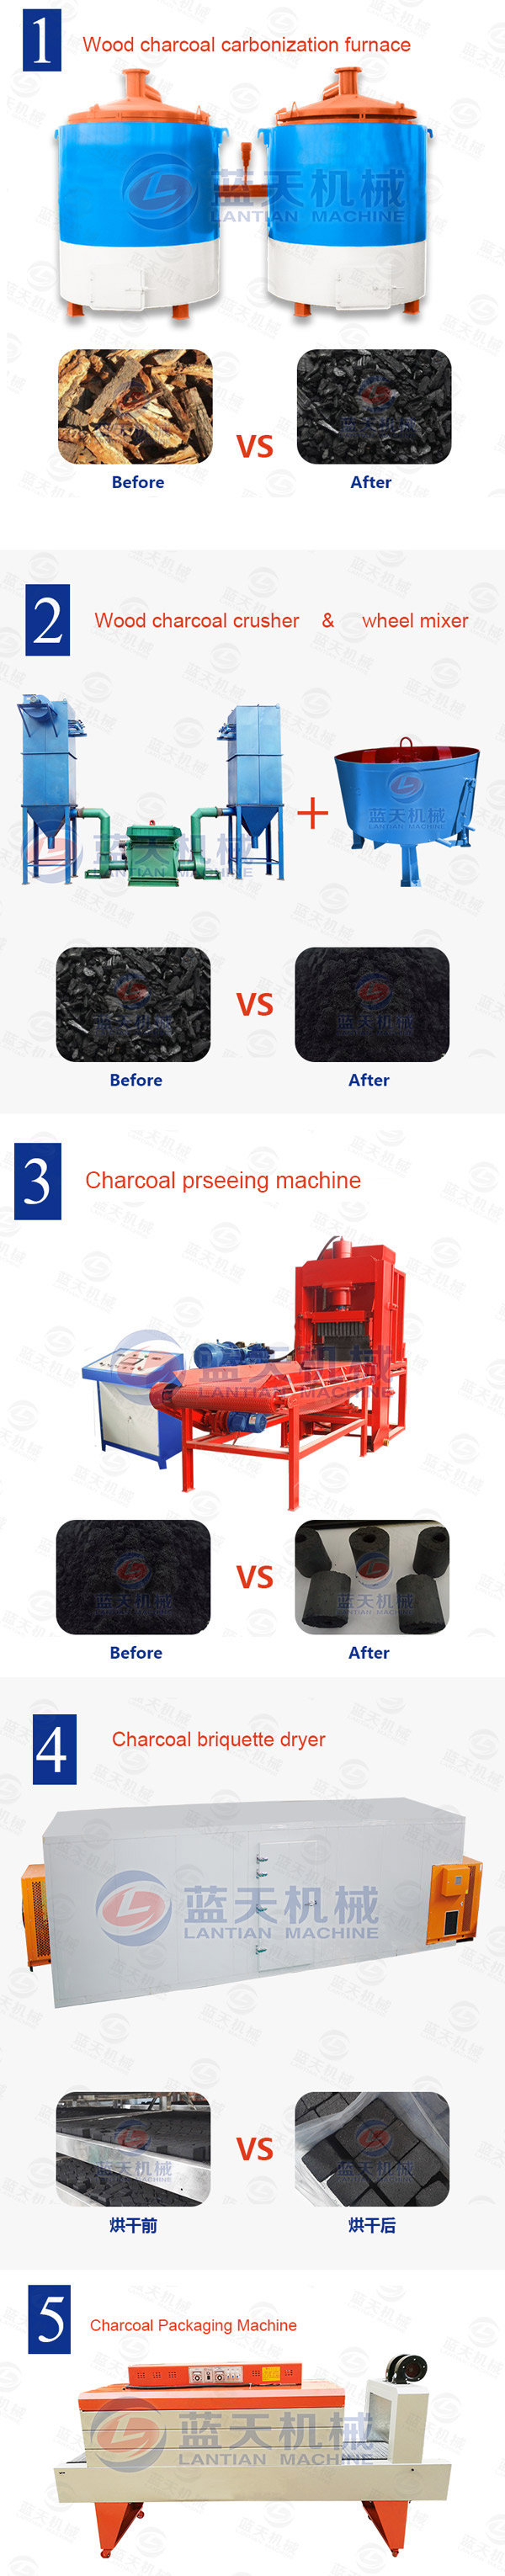 charcoal briquette pressing machine